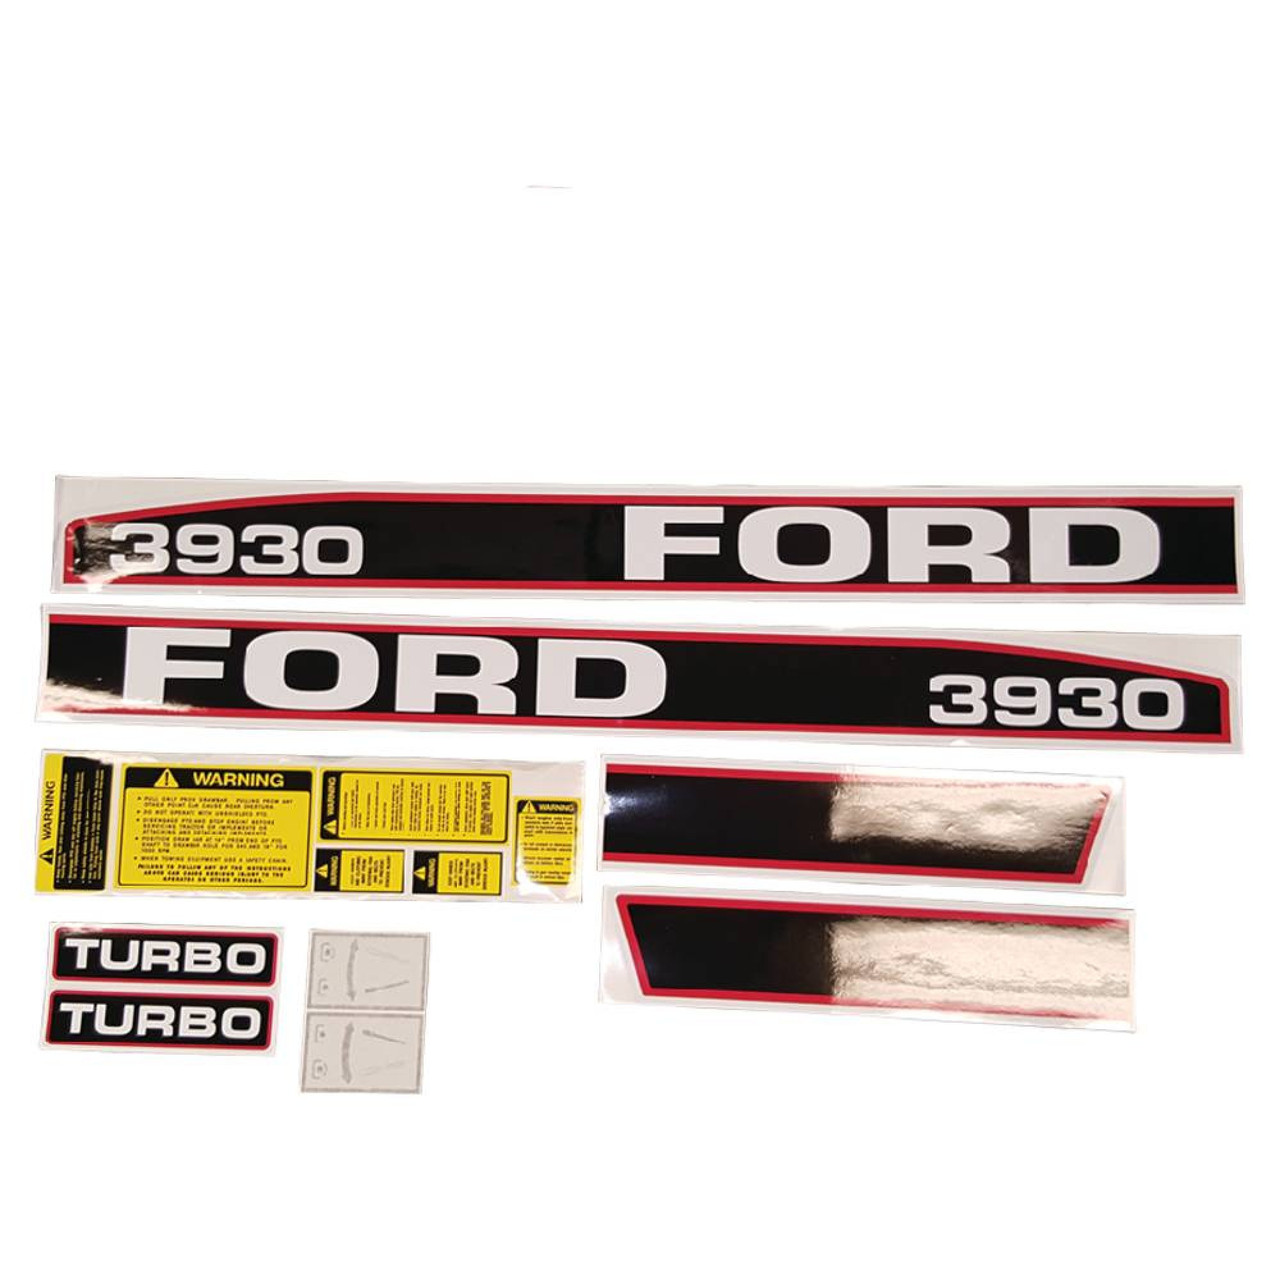 [DIAGRAM_3ER]  Ford 3930 Fuse Box - Wiring Diagram Schematics | Ford 3930 Fuse Box |  | Wiring Diagram Schematics